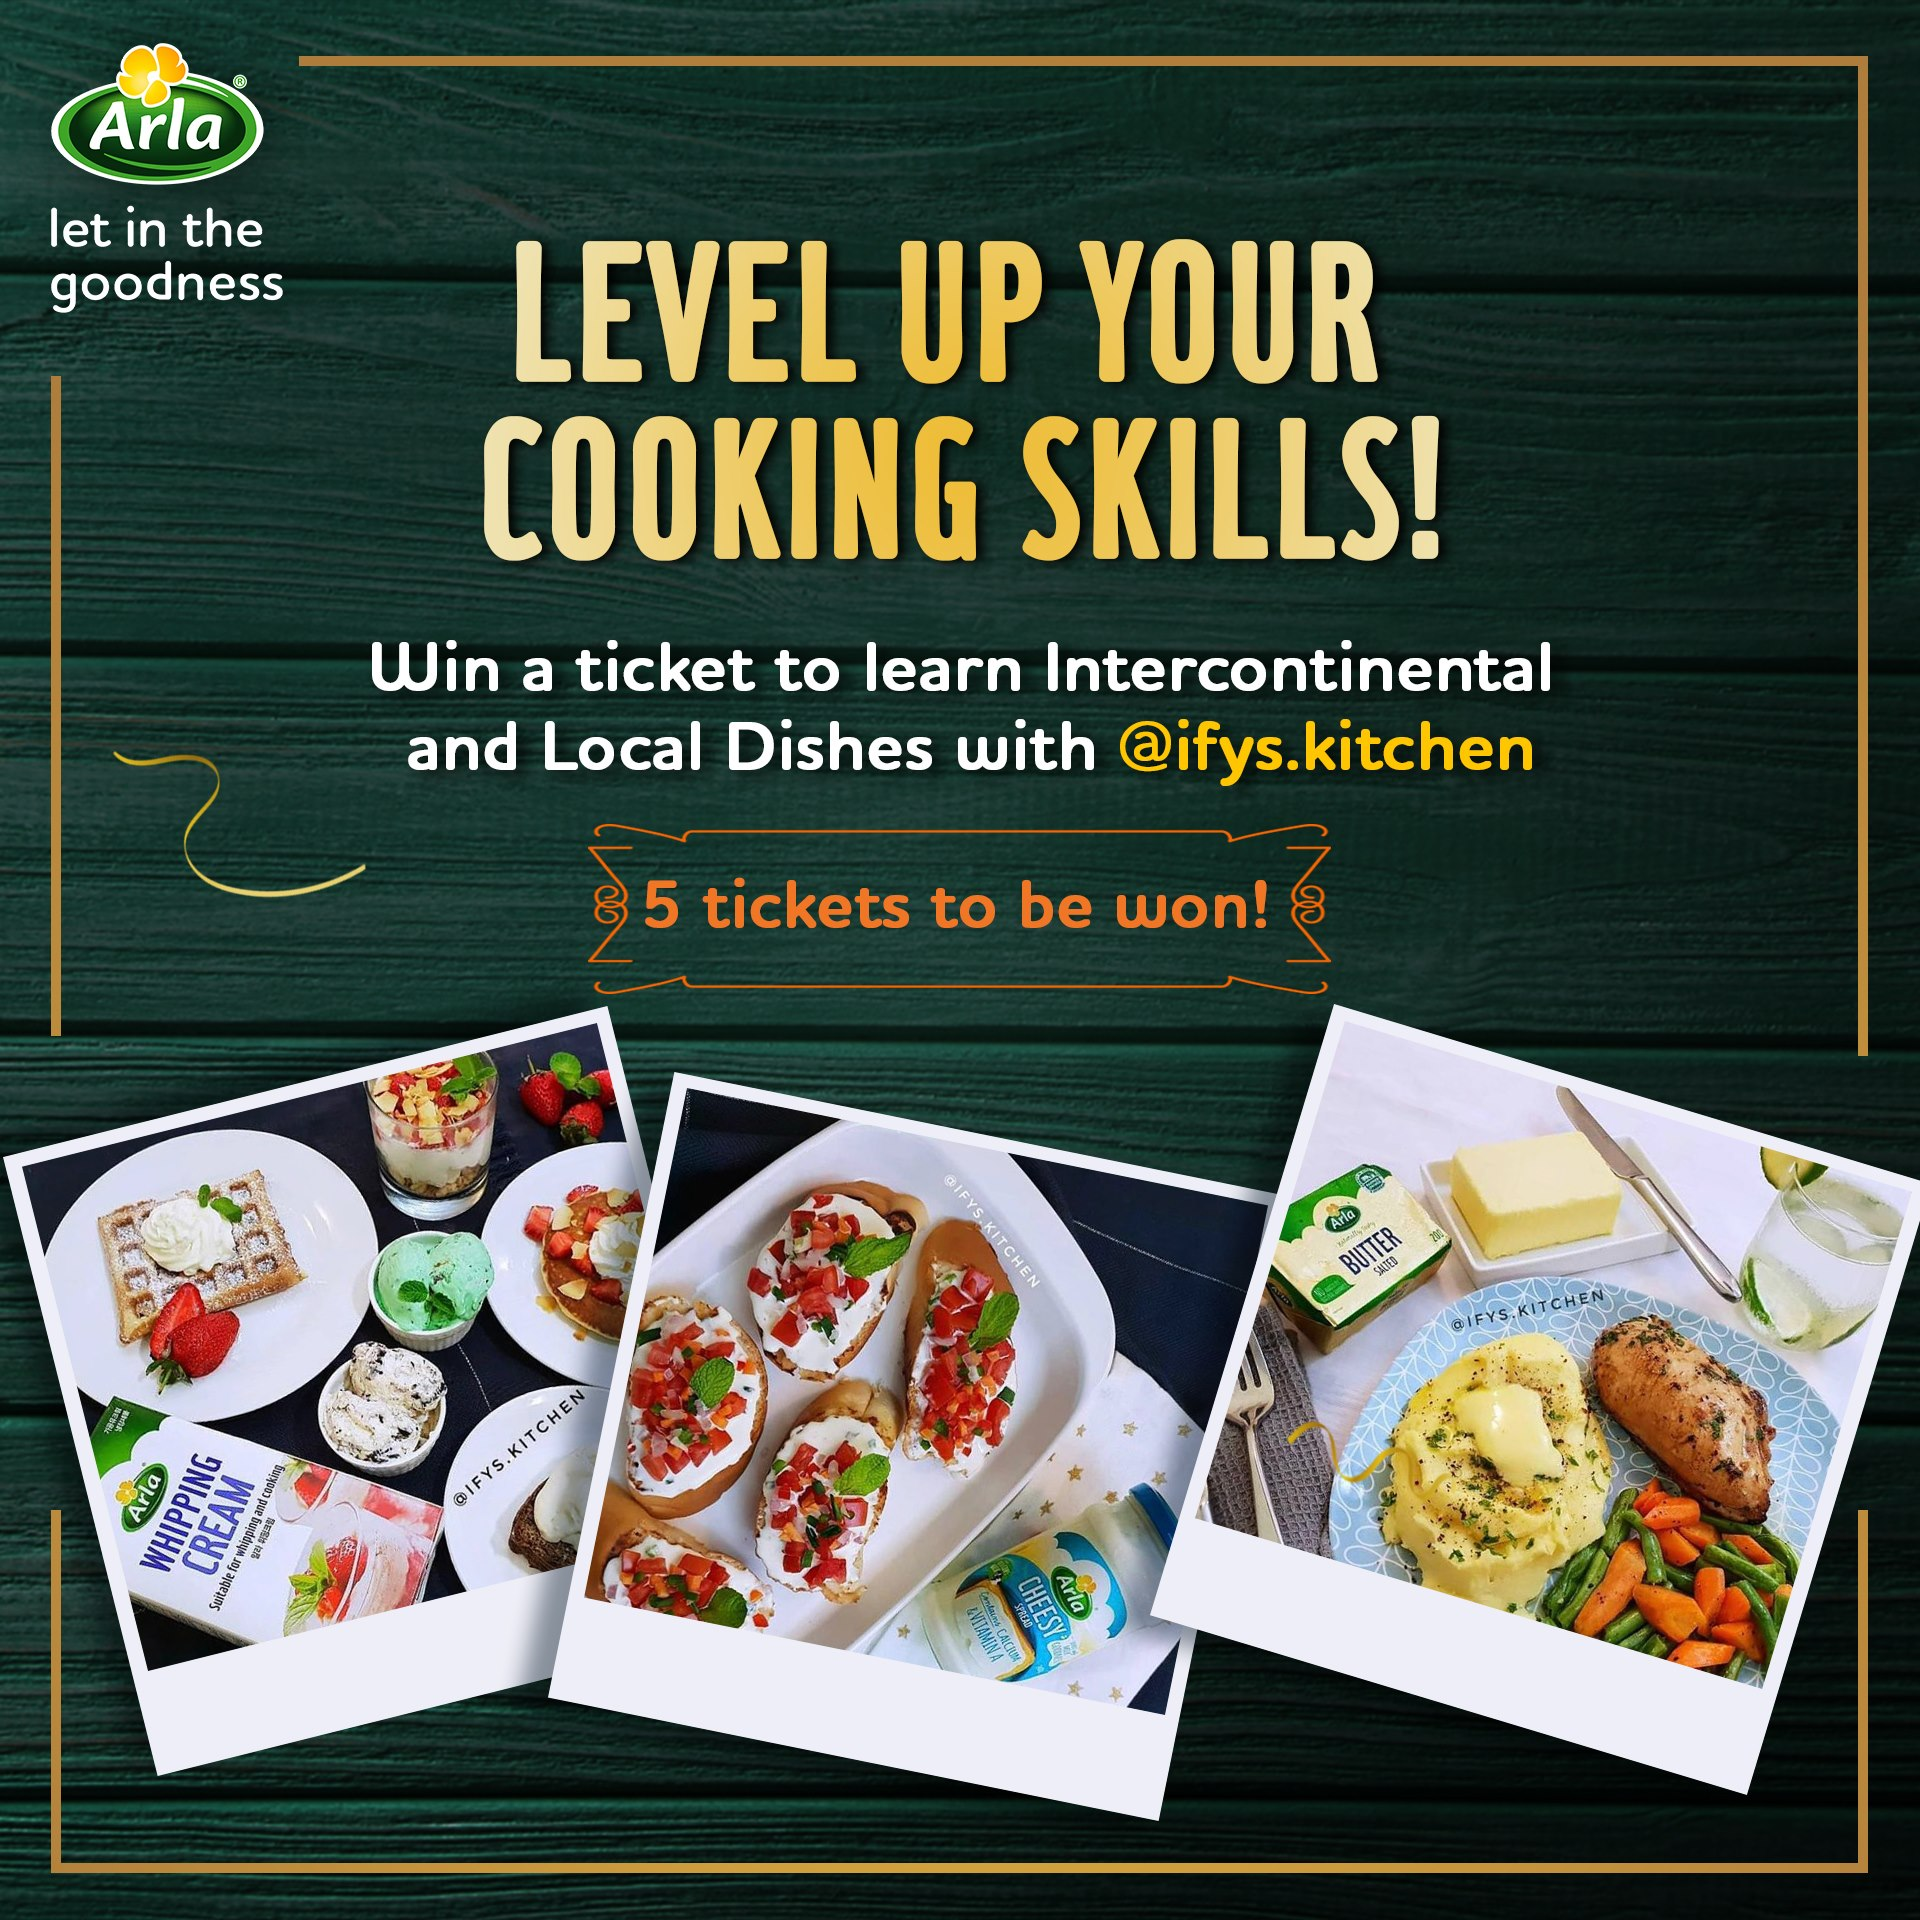 Win a ticket to learn International and Local Dishes with @ifys.kitchen powered by Arla Nigeria.